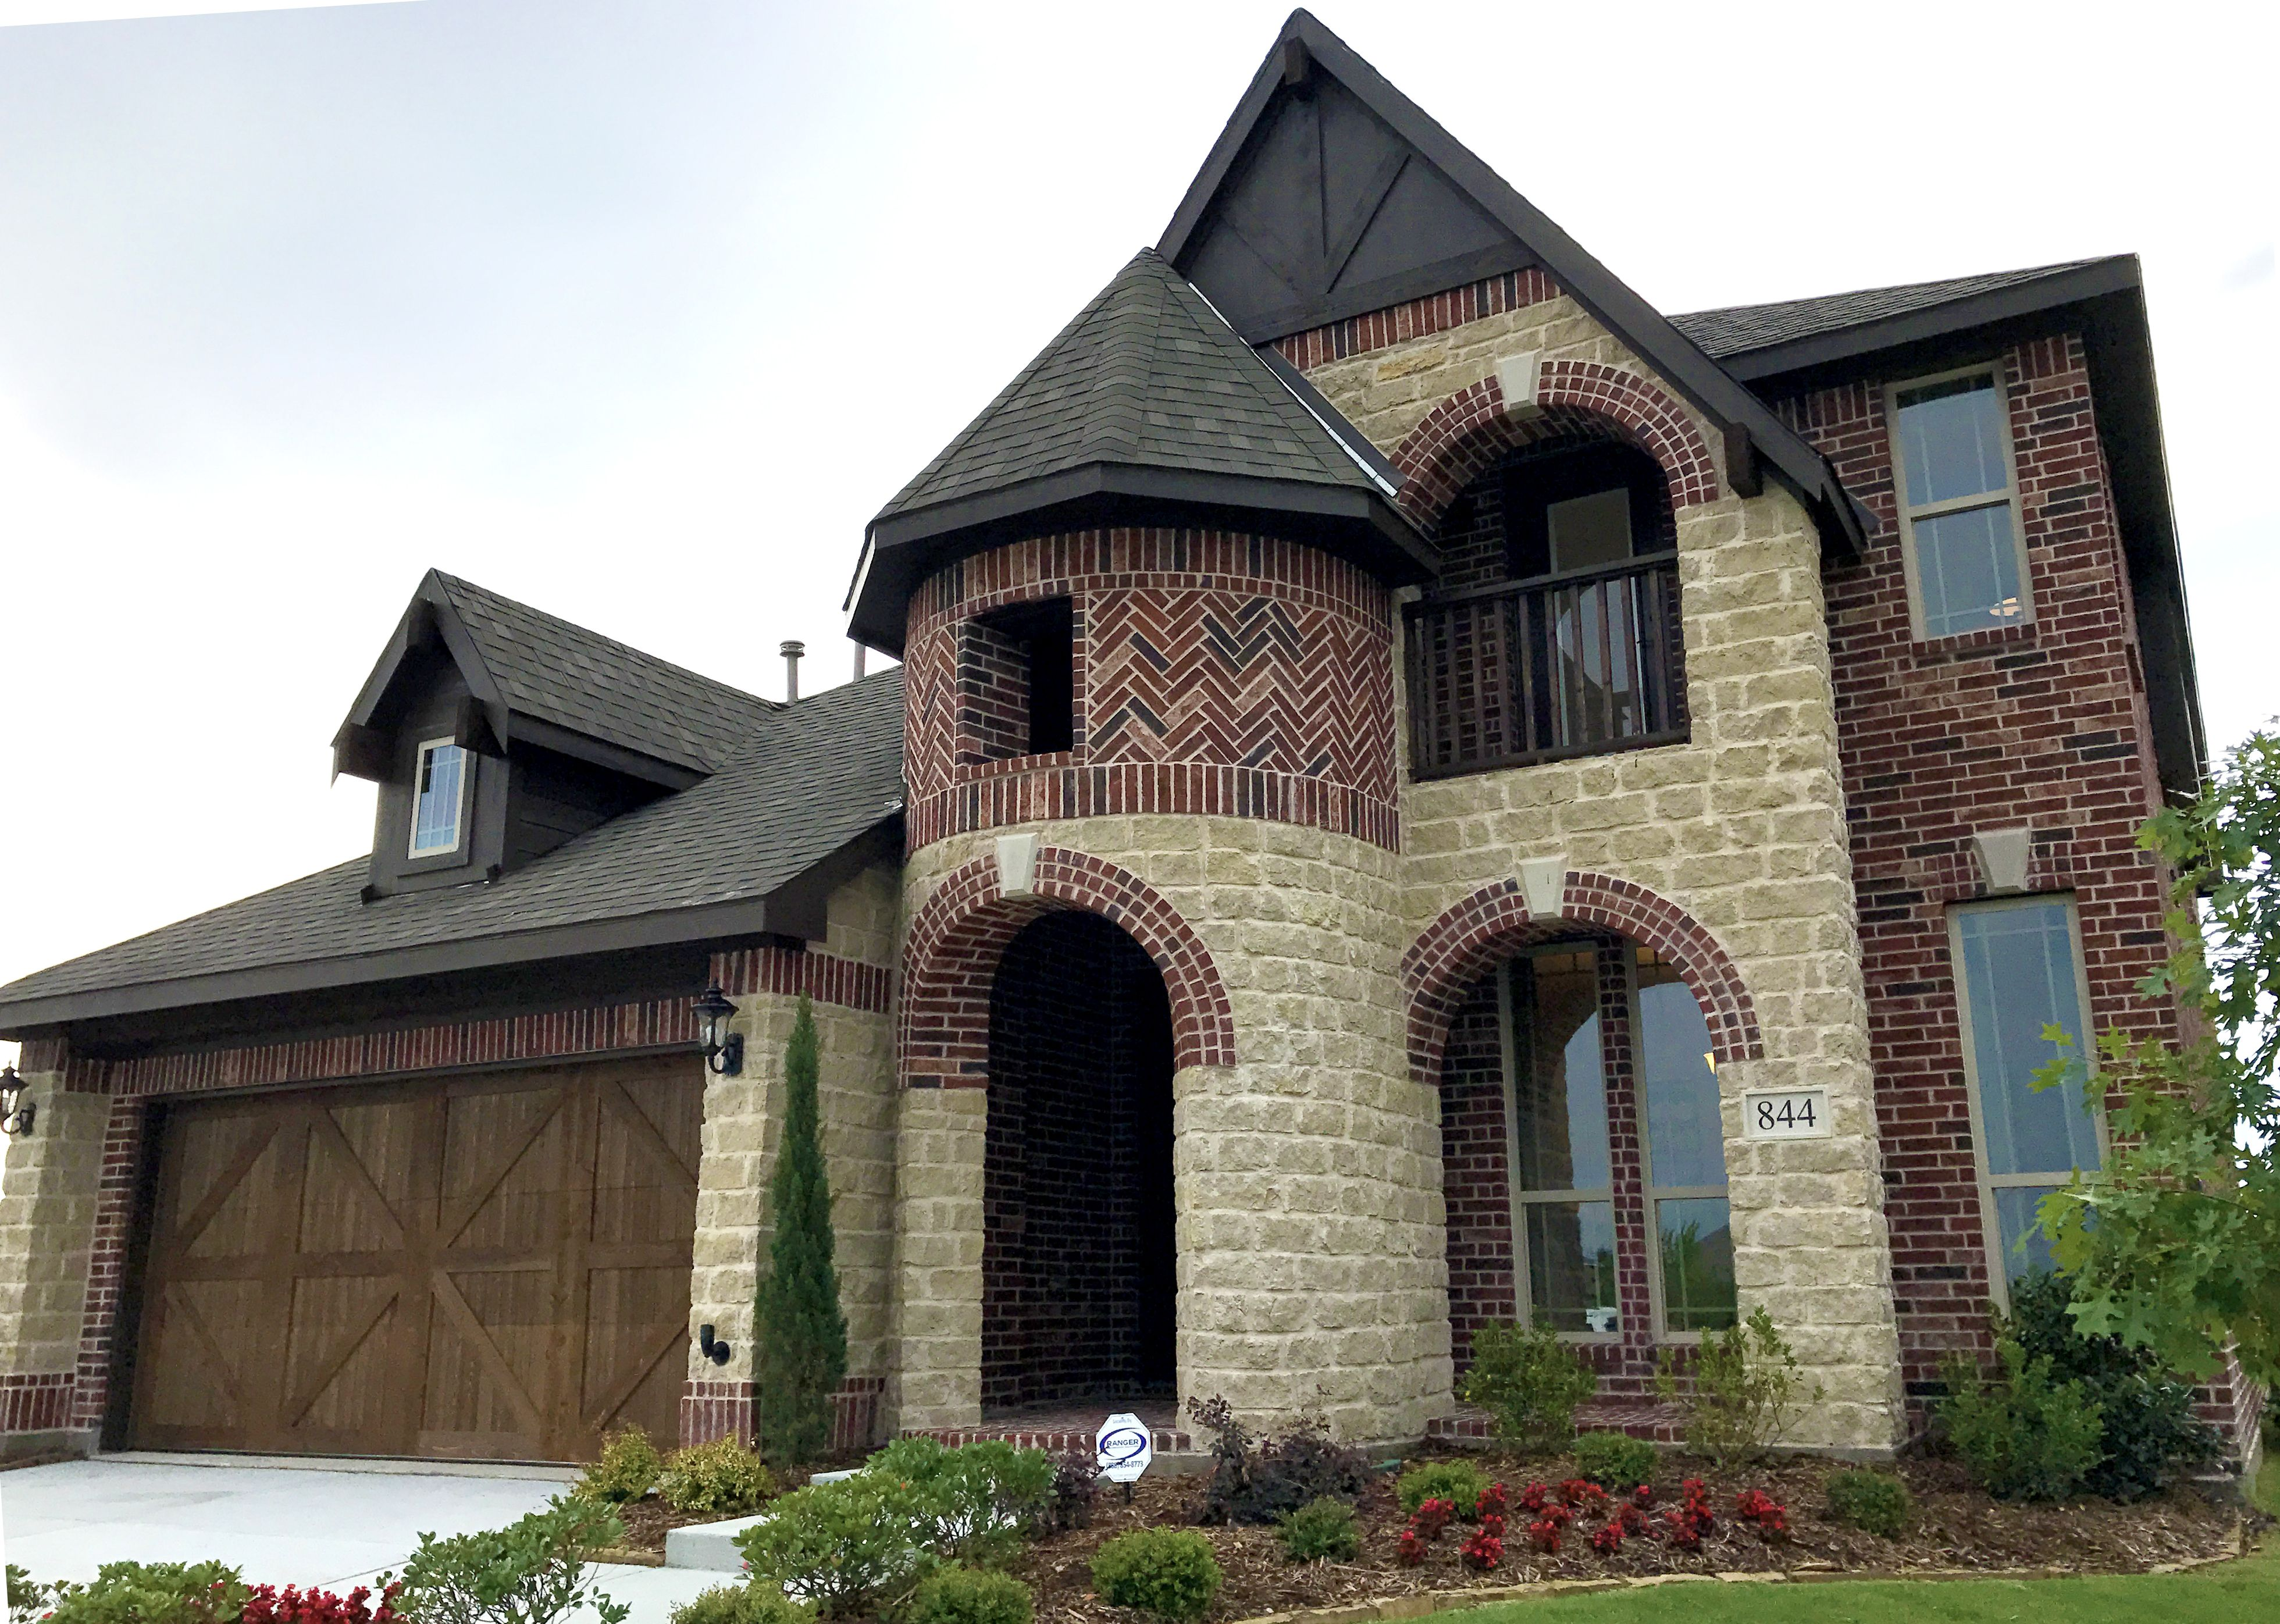 West contemporary exterior raleigh by triangle brick company - Brick Aztec Blend King Brick Stone Kirlin Mix Stone417 Paint Oxford Brown Exterior